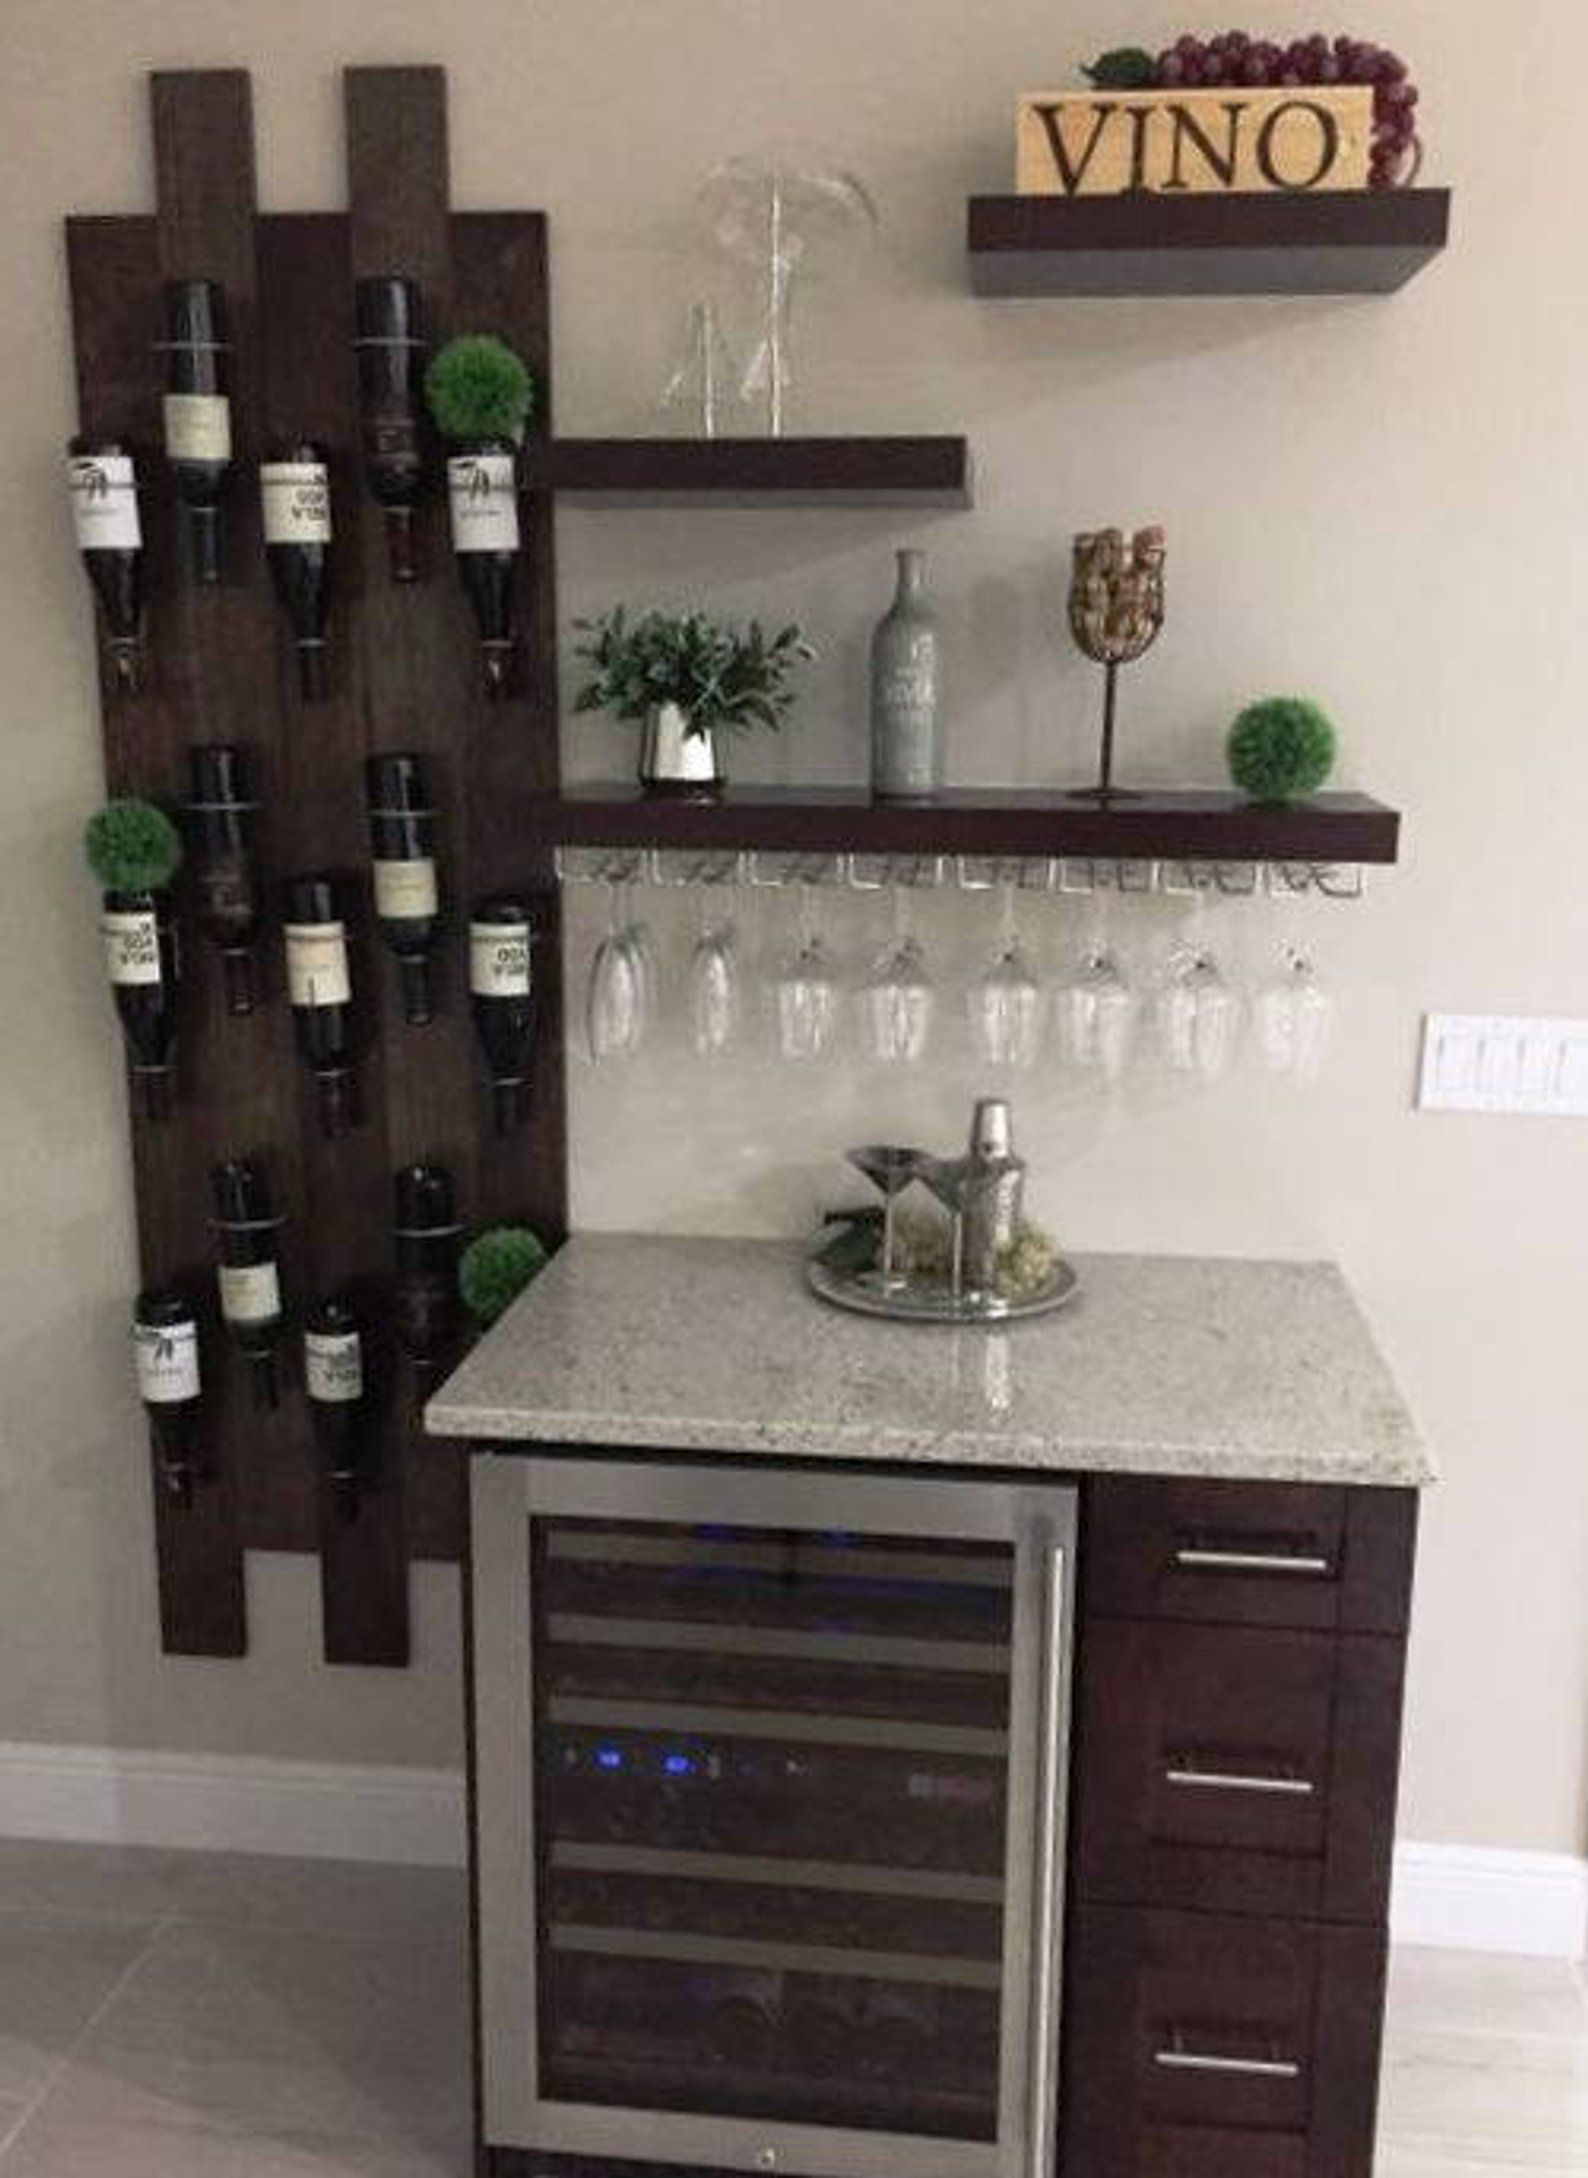 Modular Wine Rack Hanging Wine Rack Wine Bottle Holder Home Bar Decor Coffee Bar Home Diy Home Bar